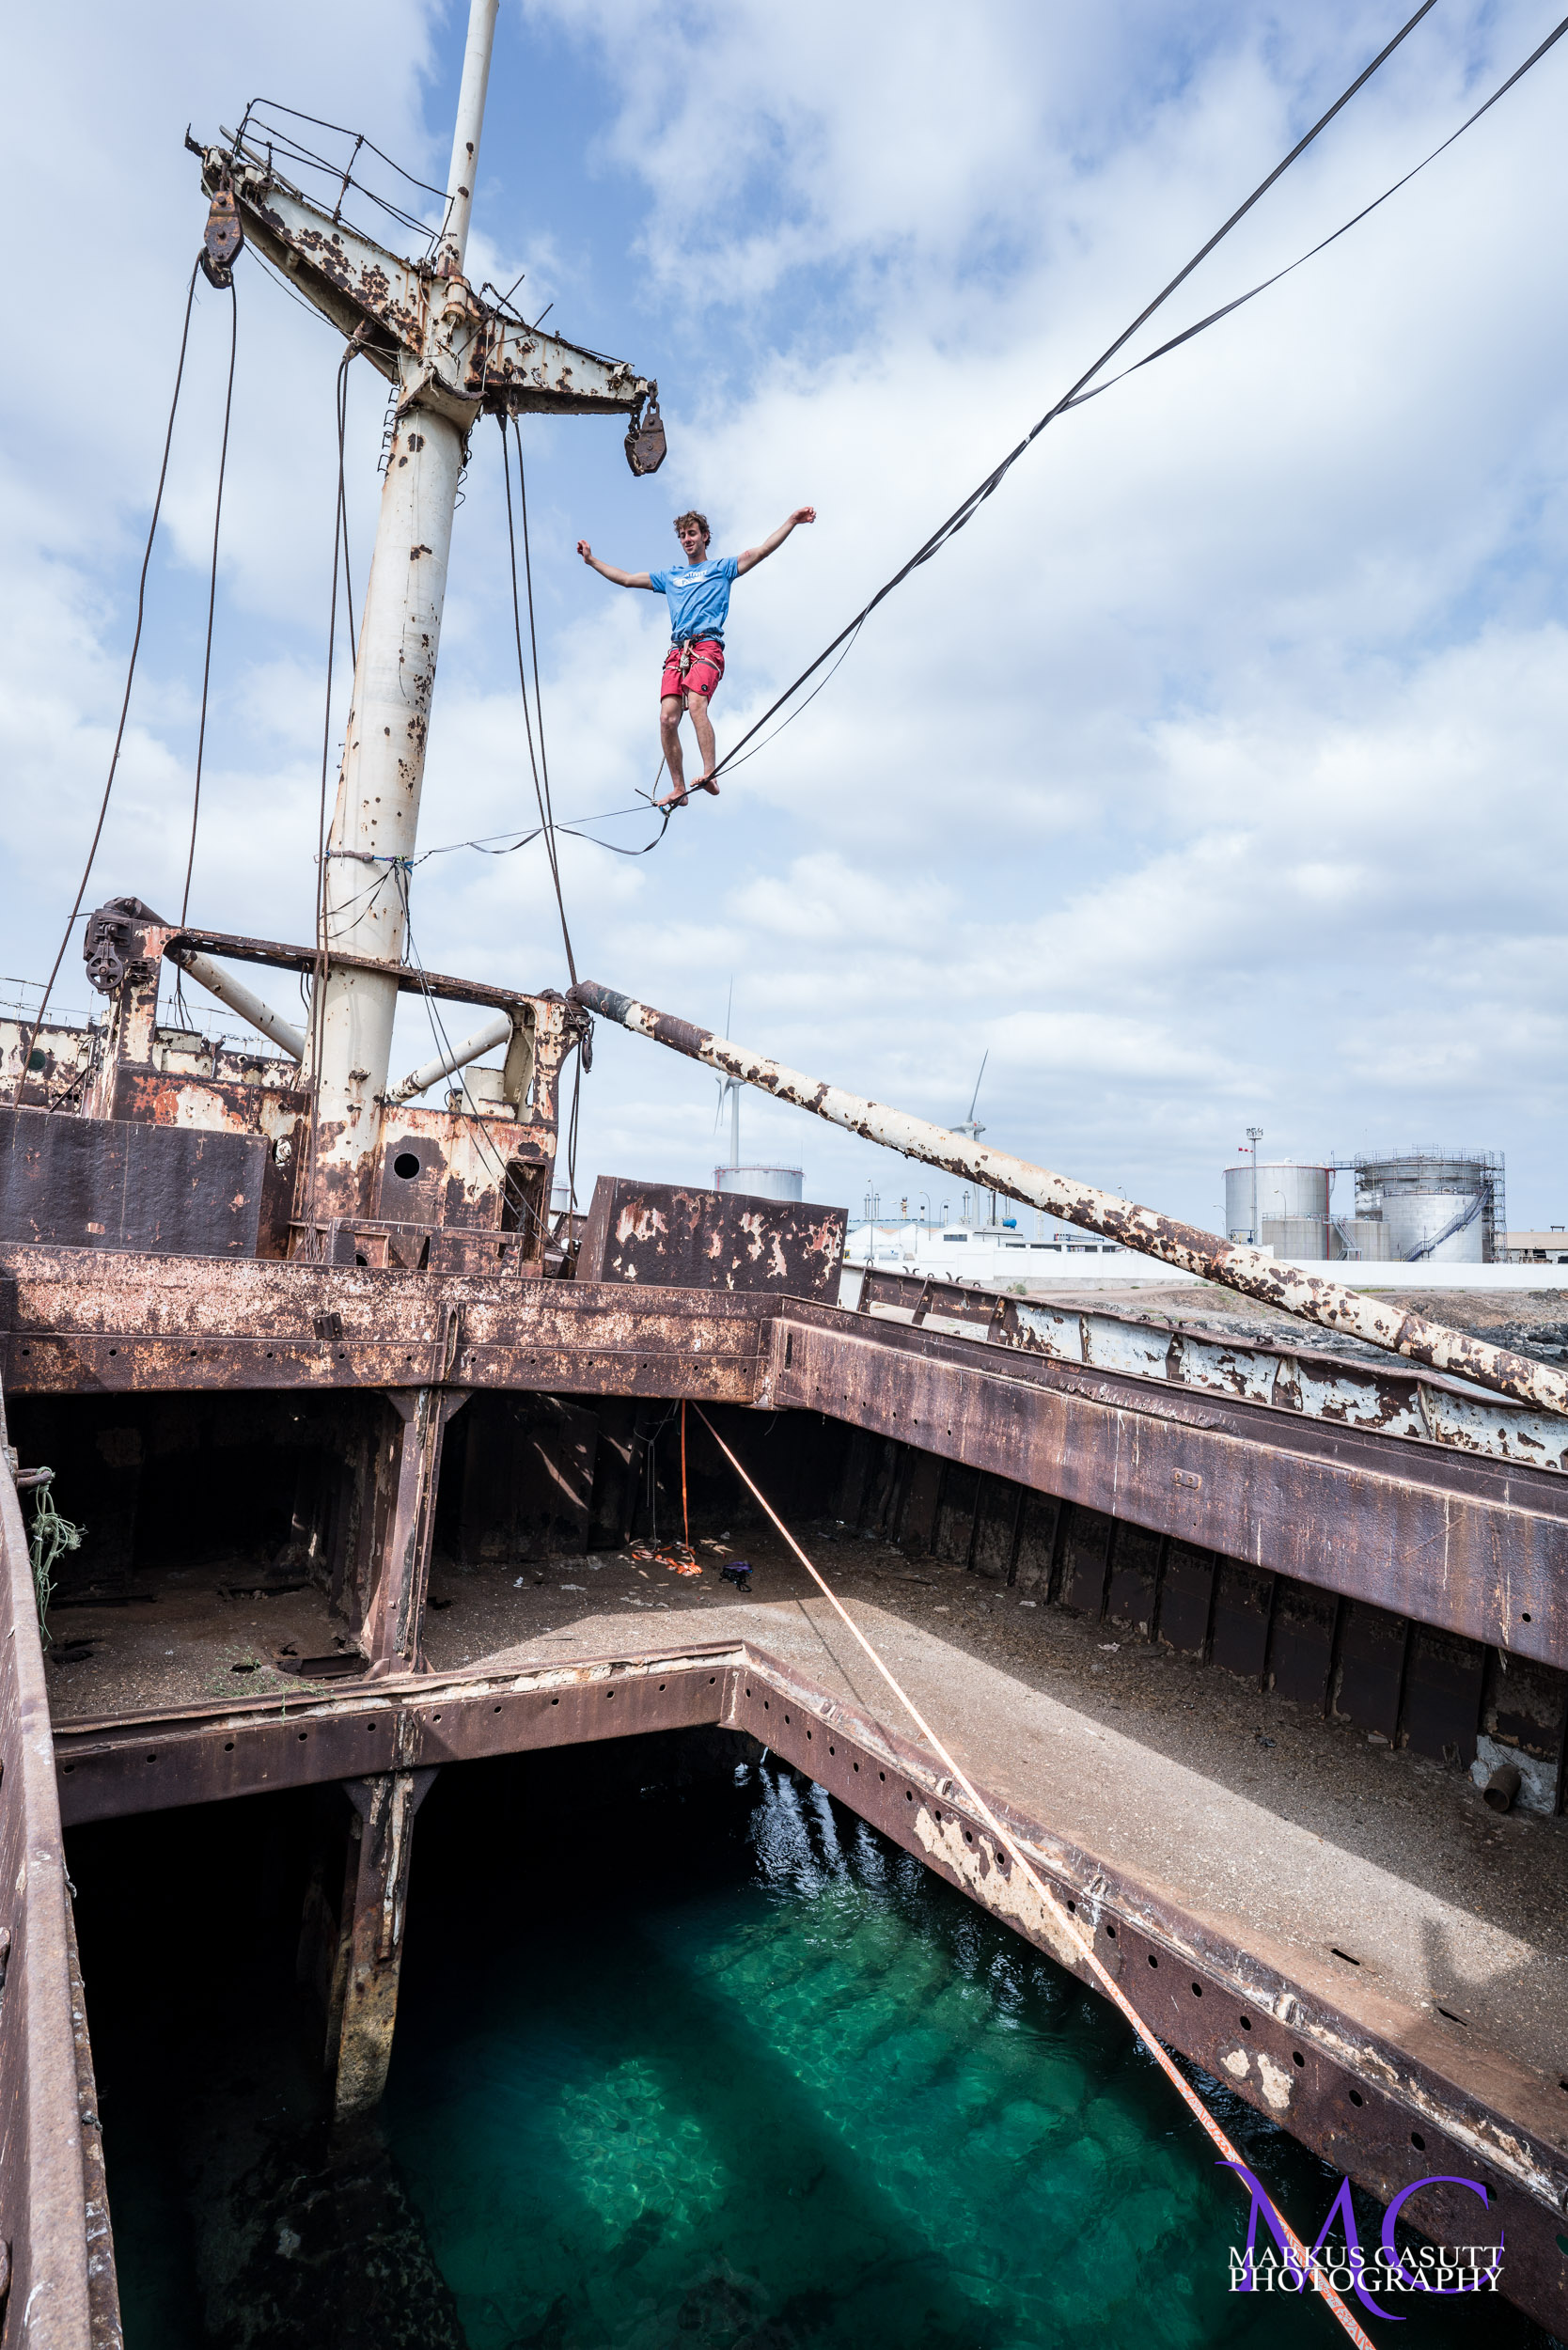 telamon canary islands shipwreck lanzarote spain espana Slackline Lyell Grunberg show performance spectacle Highline trickline.jpg